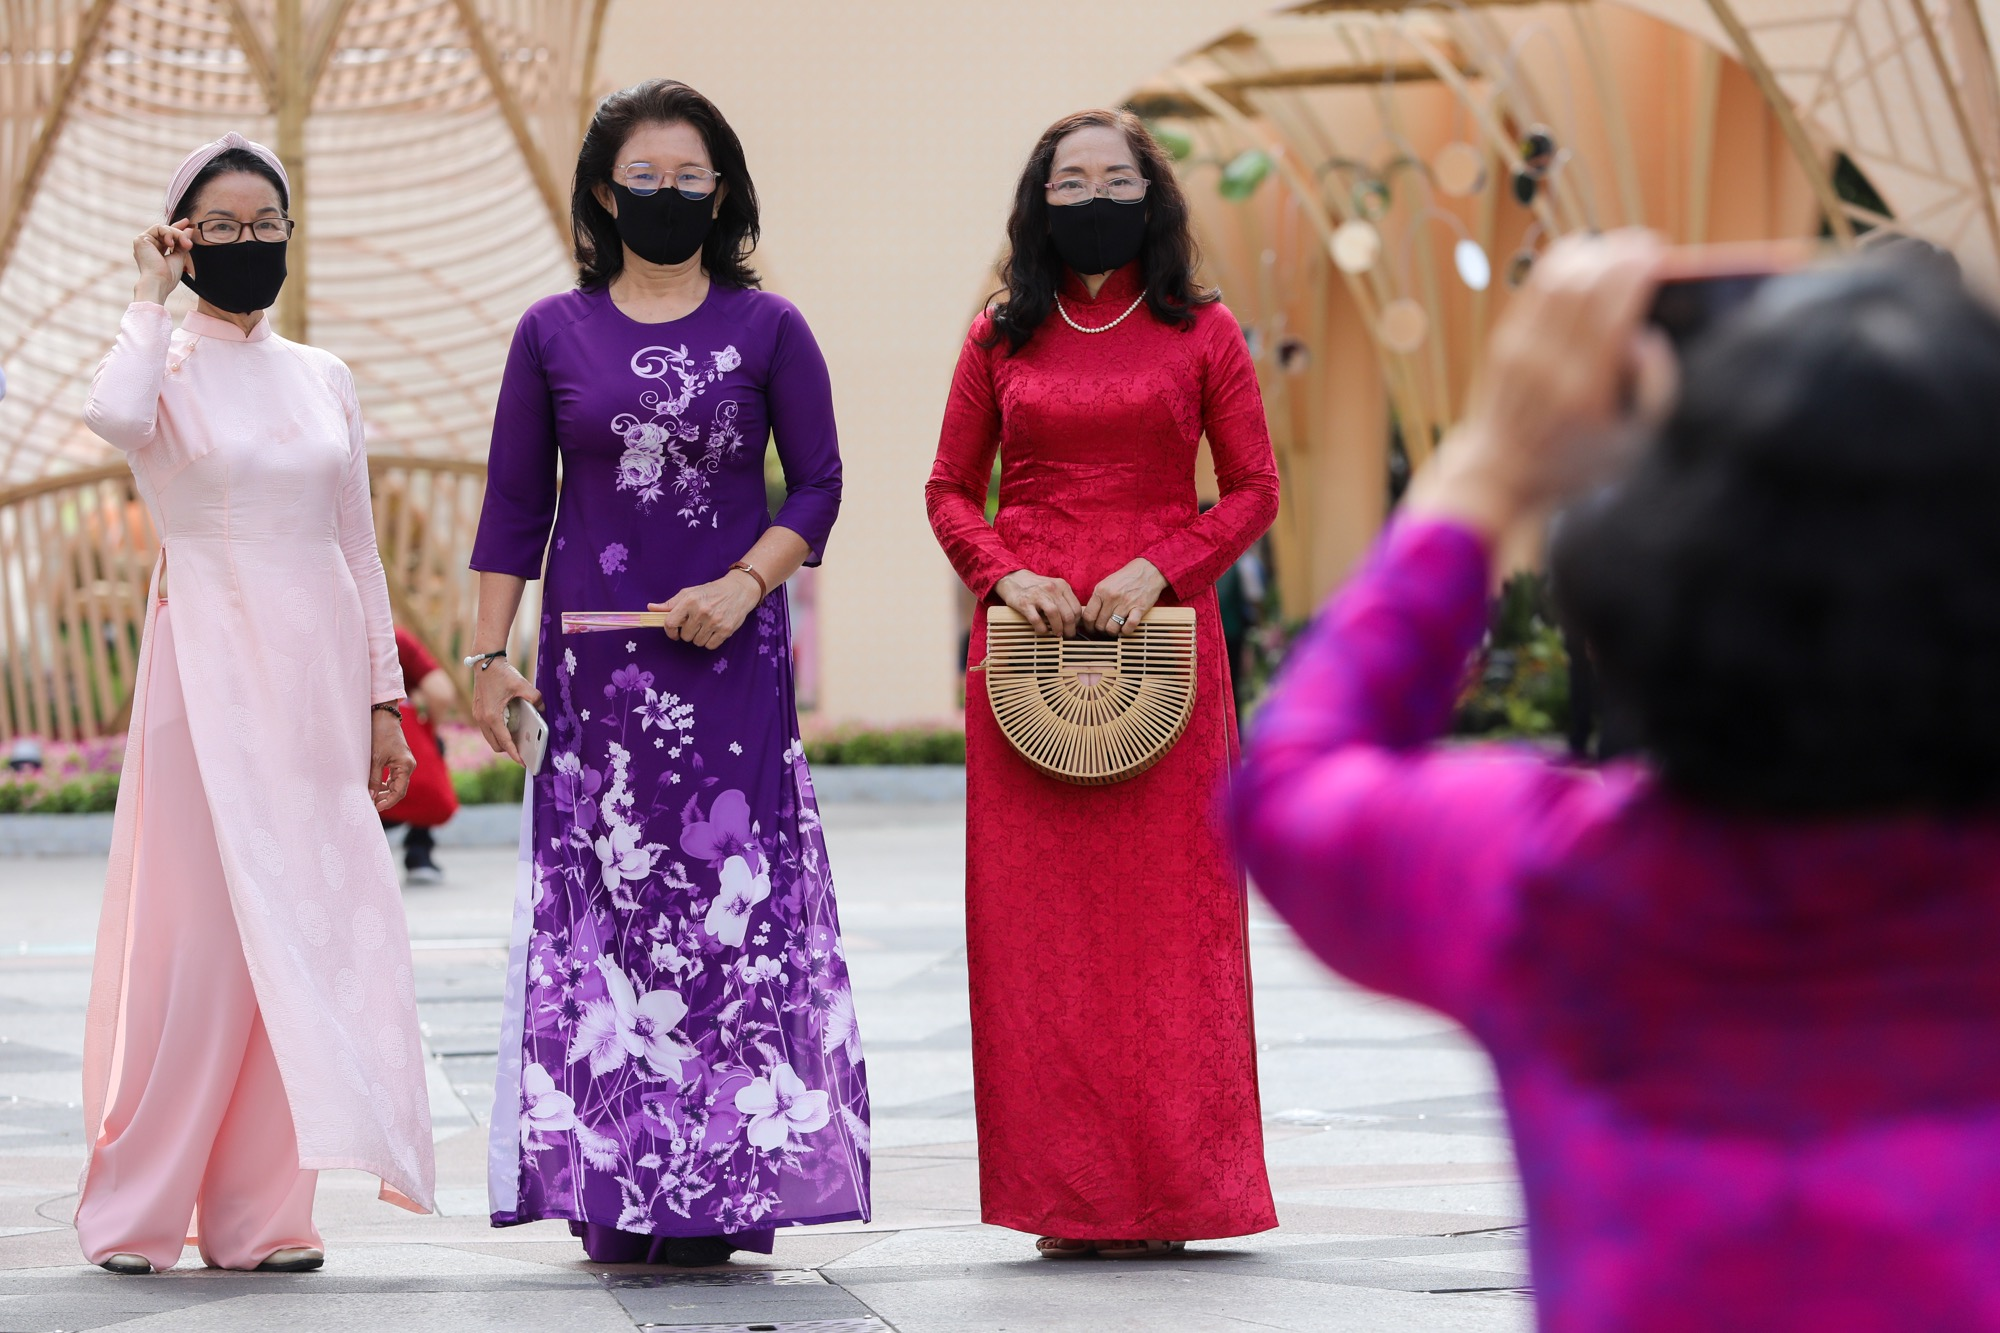 Many women visited the flower street dressed in the traditional ao dai and had photographs taken while wearing masks.